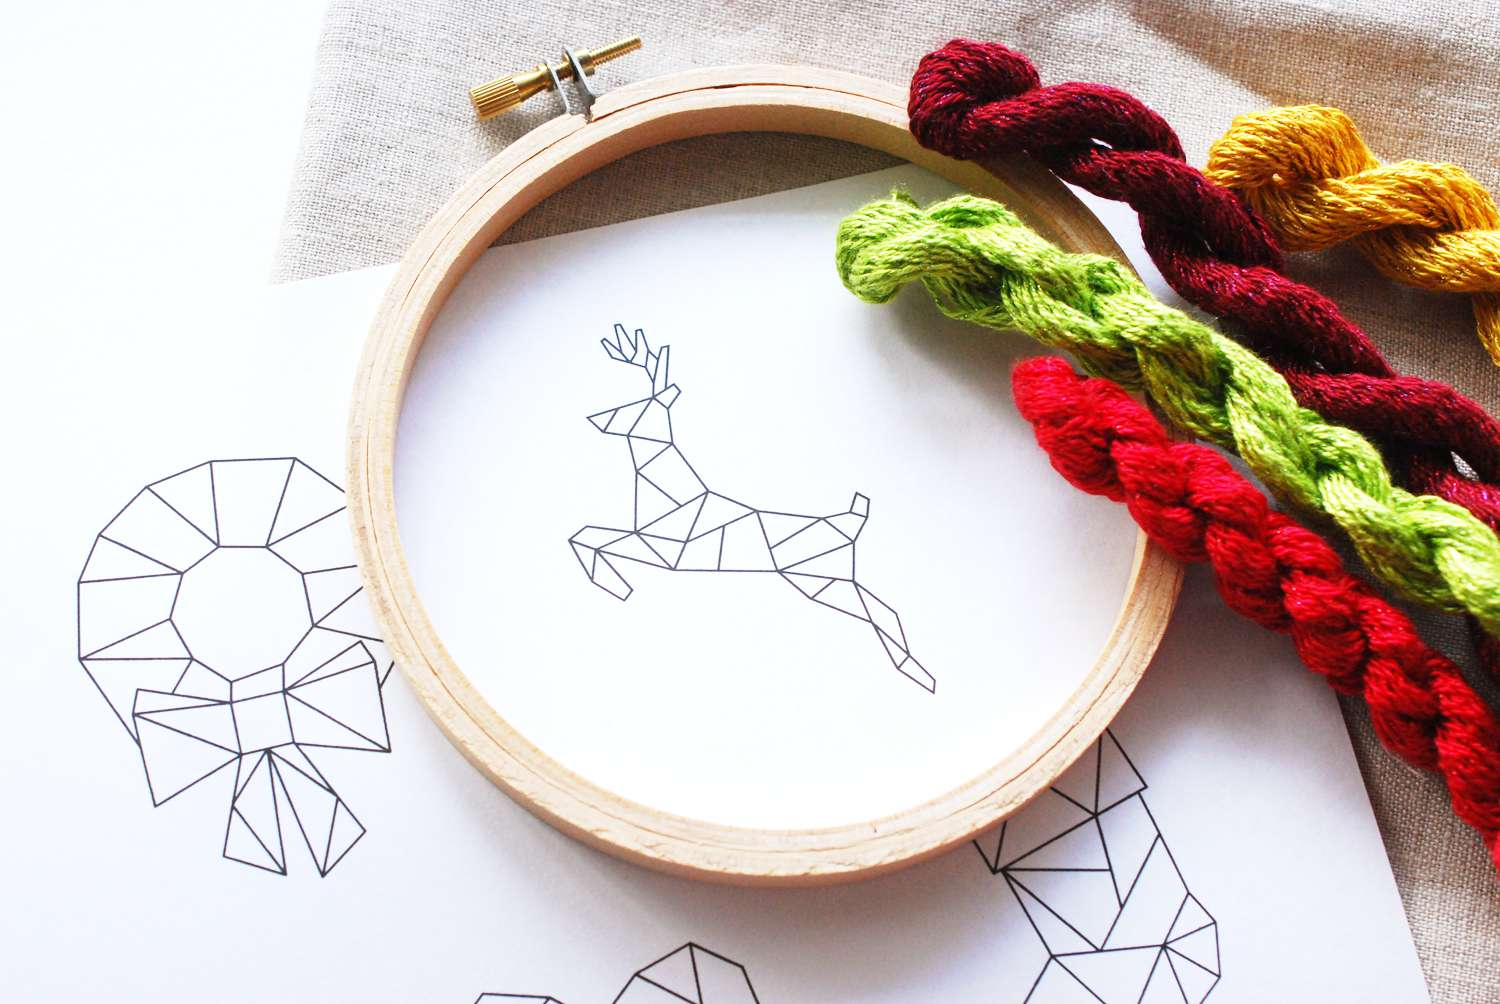 Geometric reindeer image on paper inside a hoop with thread to the side.